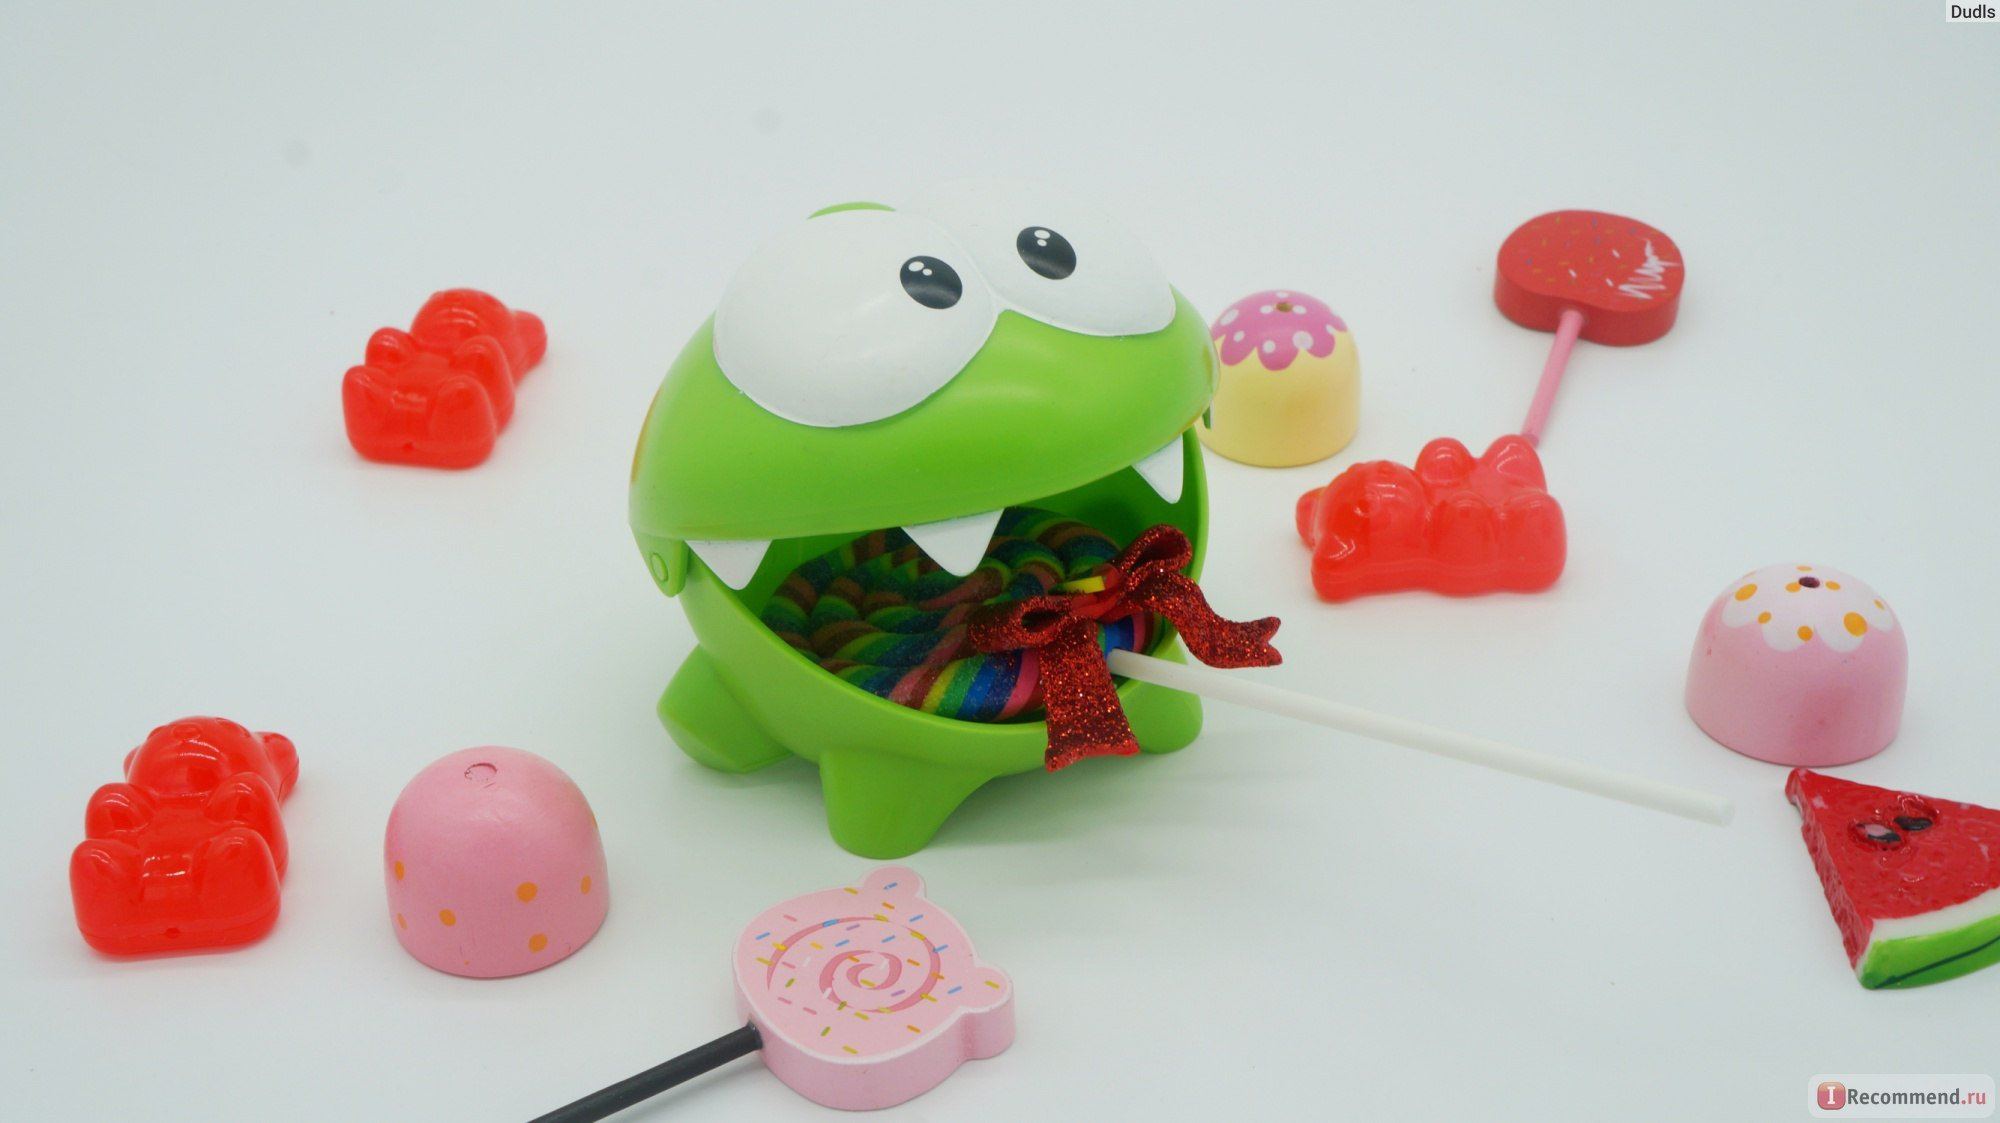 Om Nom СUT THE ROPE PLASTIC TOY Fruit Lunch box -Om Nom open mouth - Cut The Rope Figures-Cut the Rope Stuffed Animal-Cut The Rope Toys - Nommies-om nom frog-cut the rope magic -Om-nom Figure Plastic